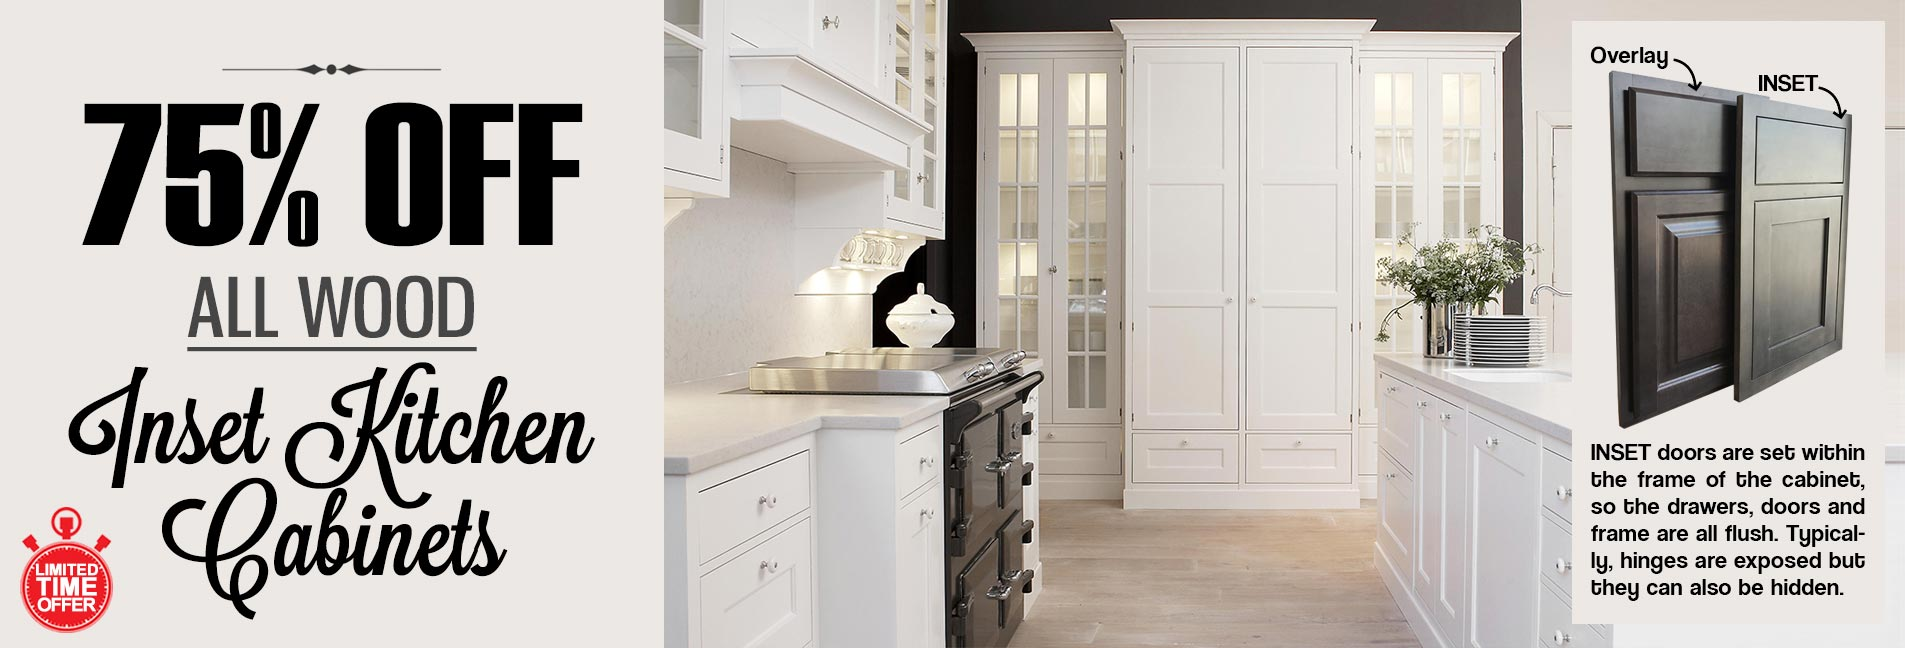 Kitchen cabinets bay ridge brooklyn - Inset Kitchen Cabinets